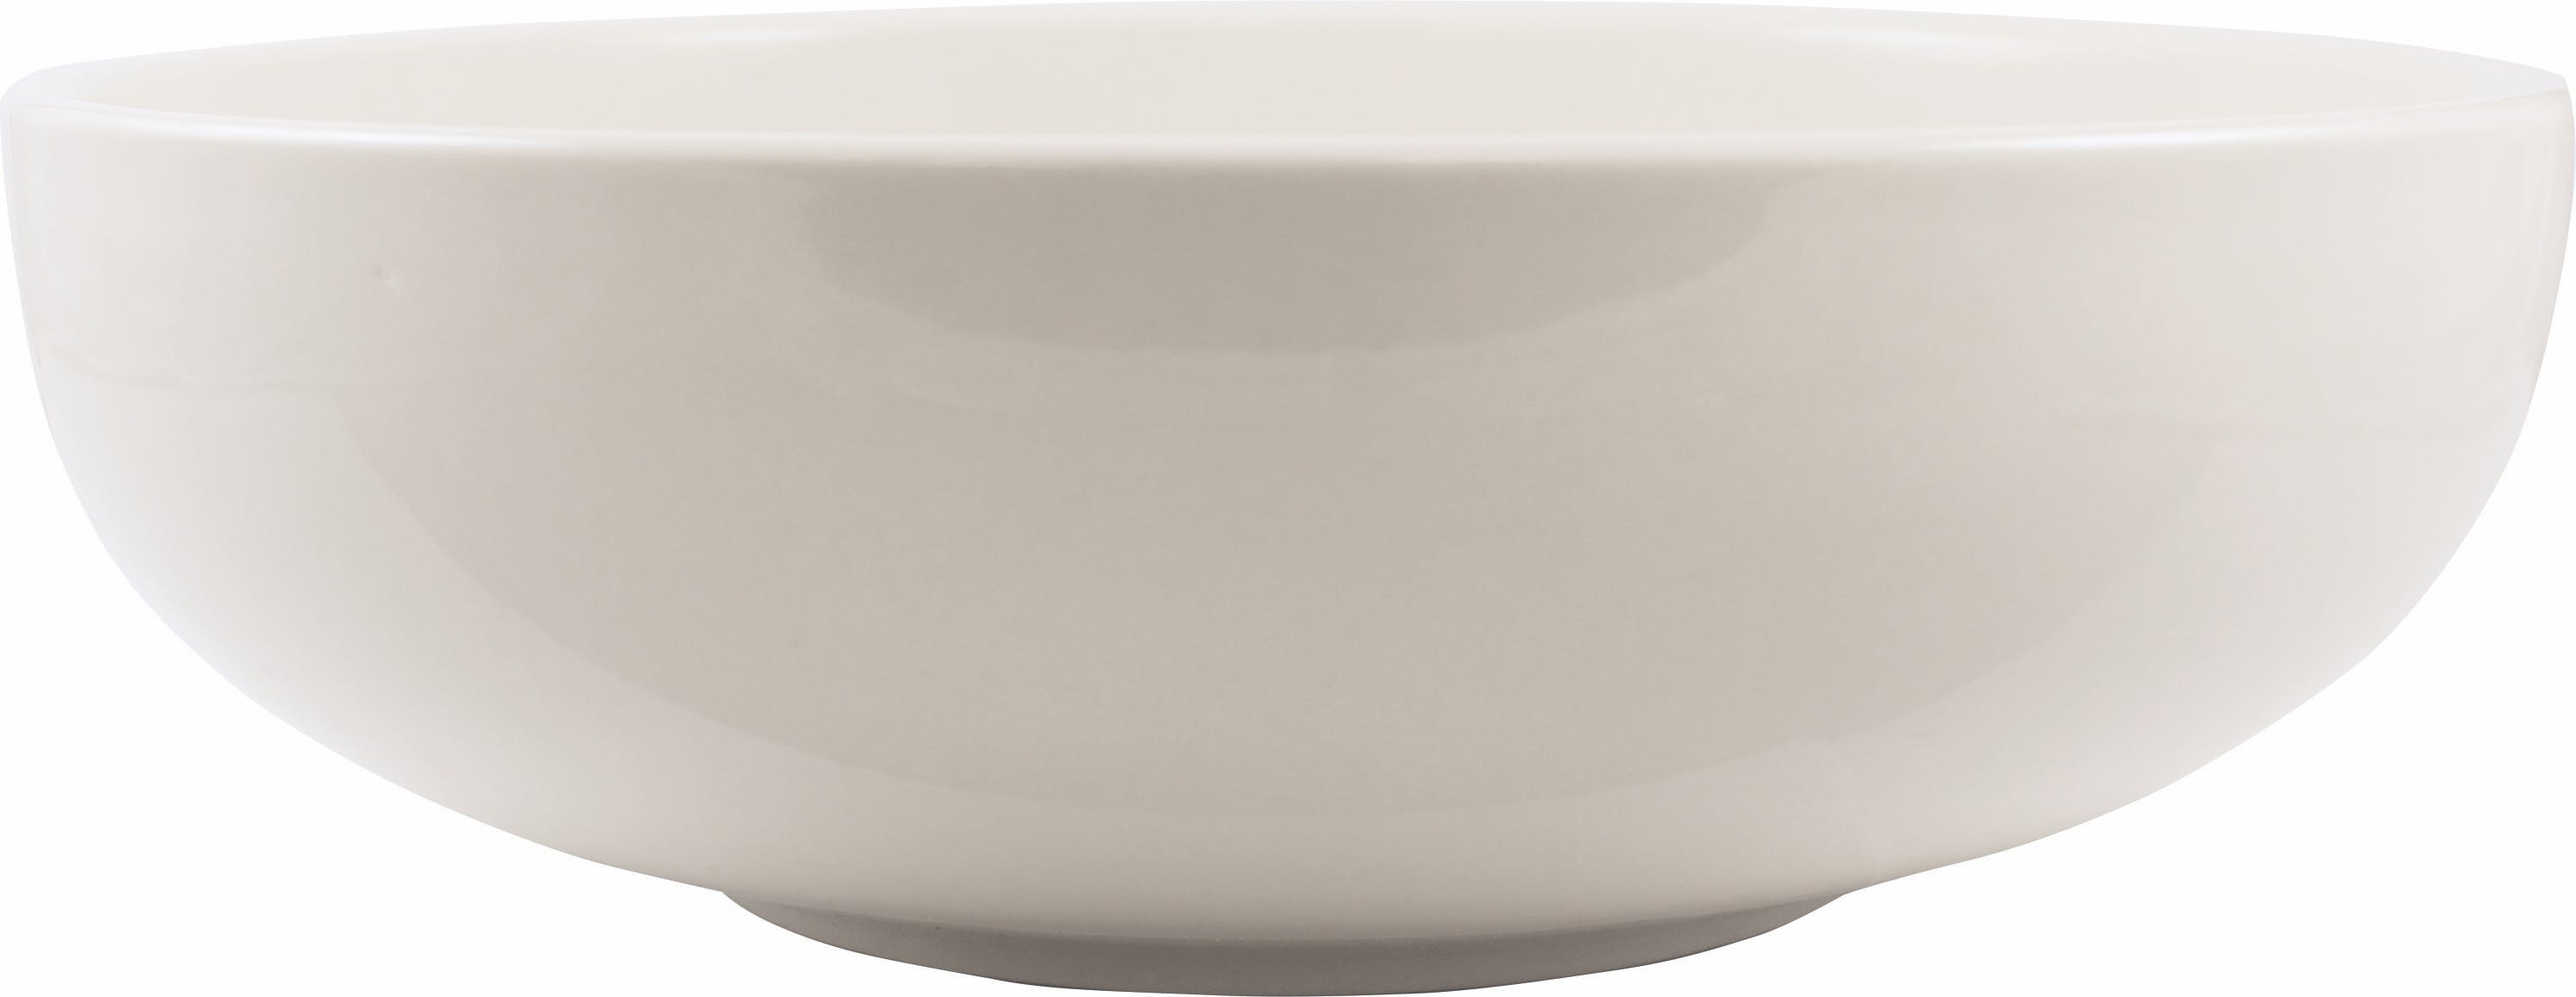 55 oz. American White Roma Salad Bowl Plate sold by Prestige Glassware